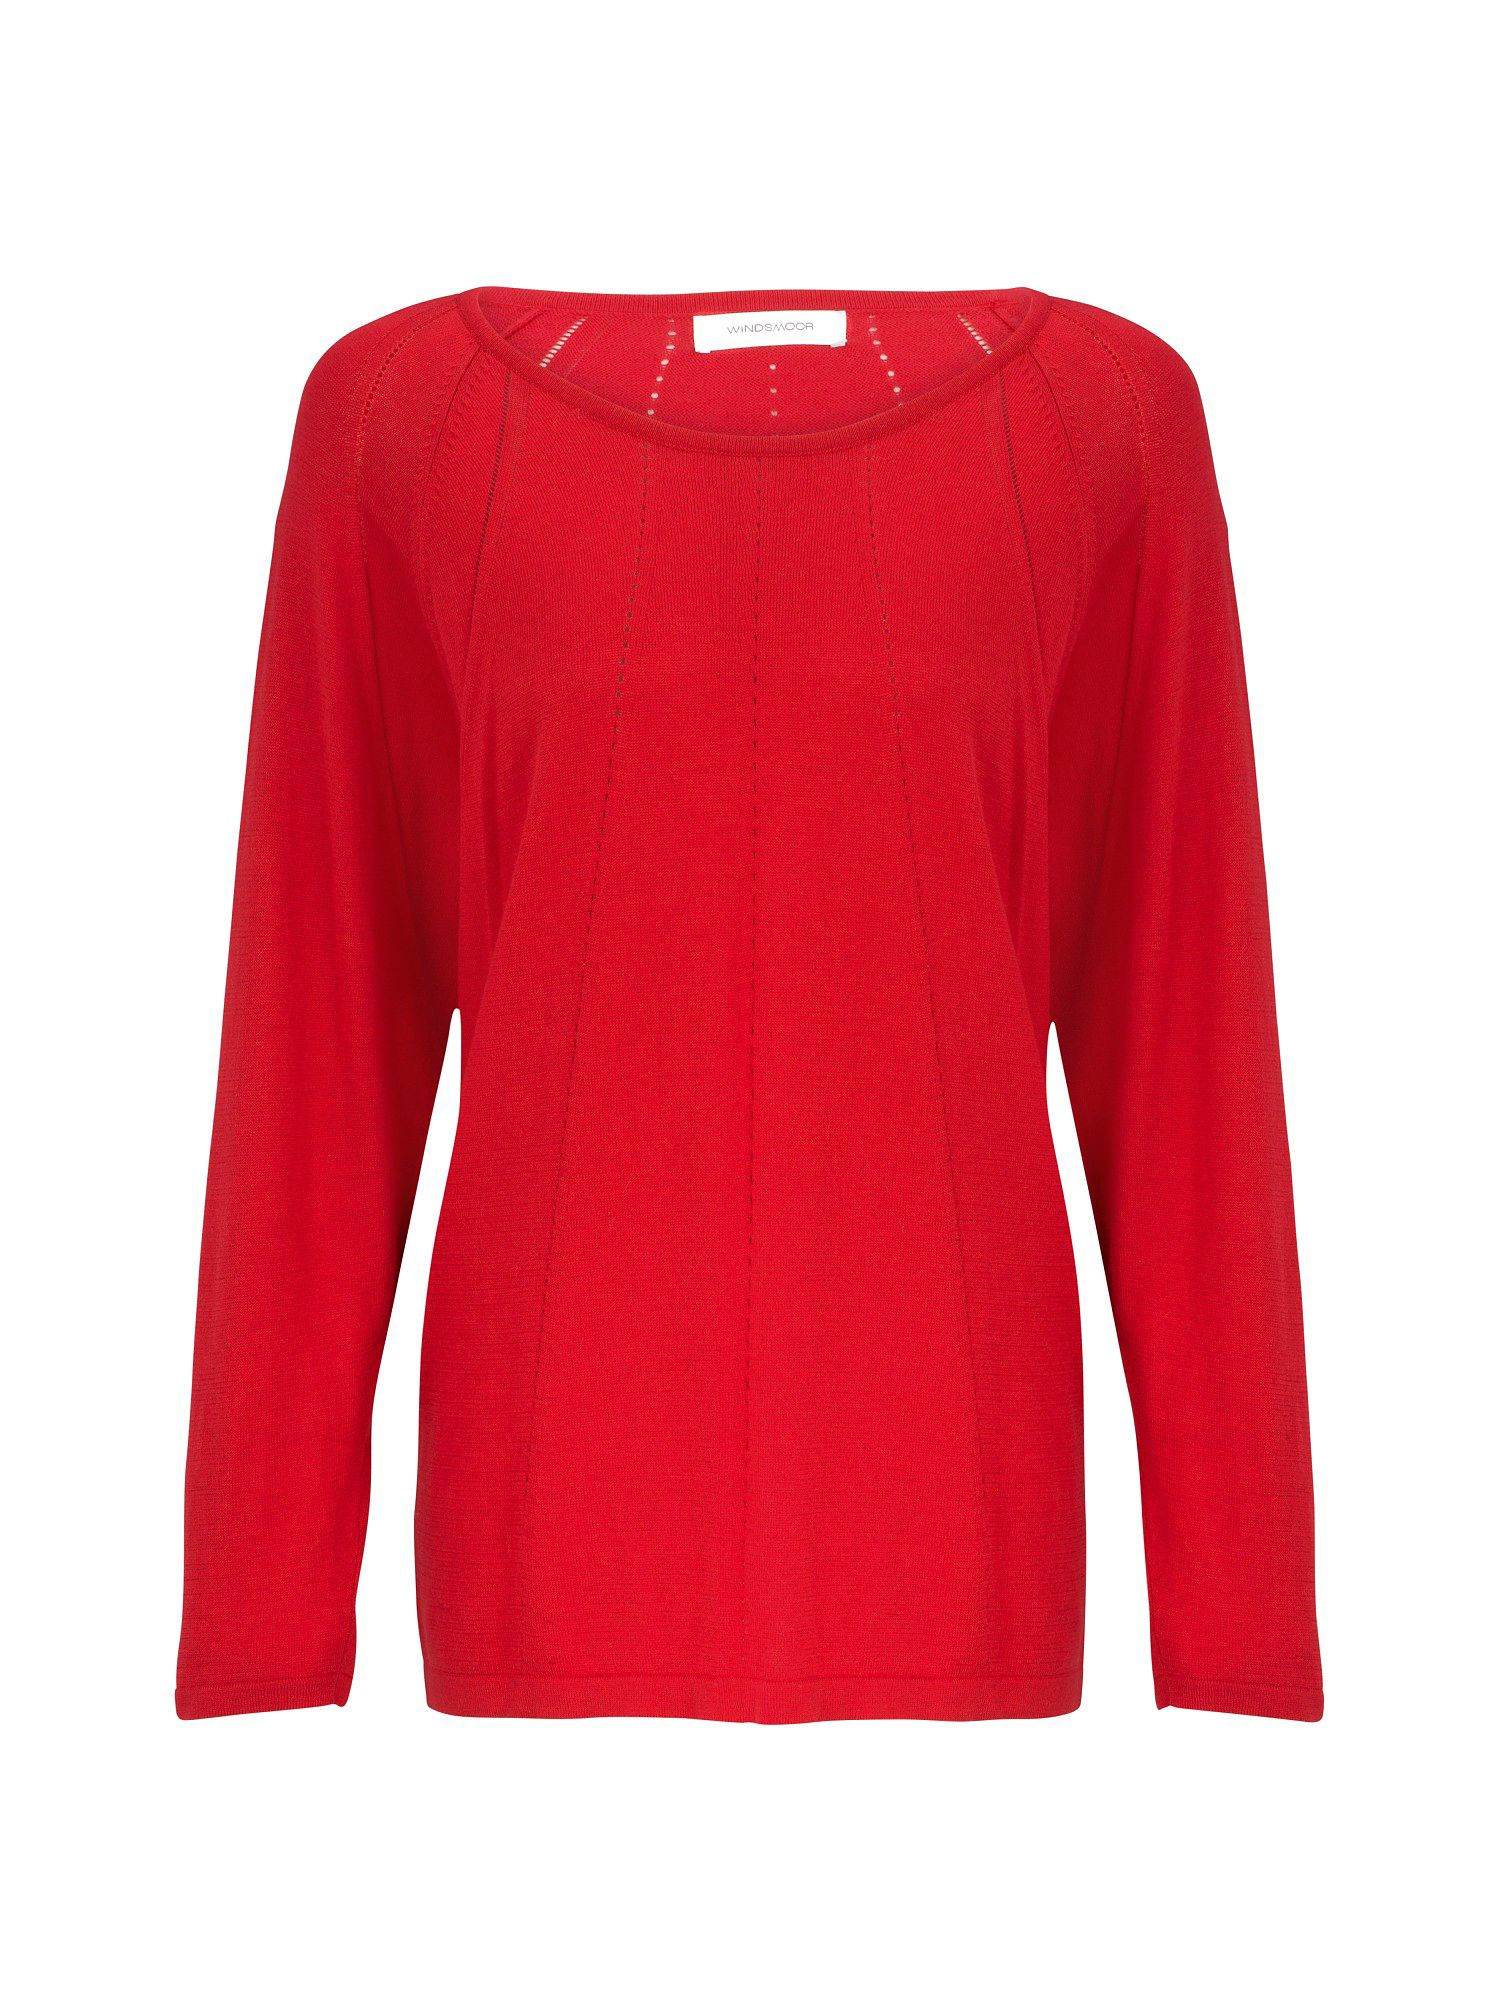 Rouge pointelle sweater